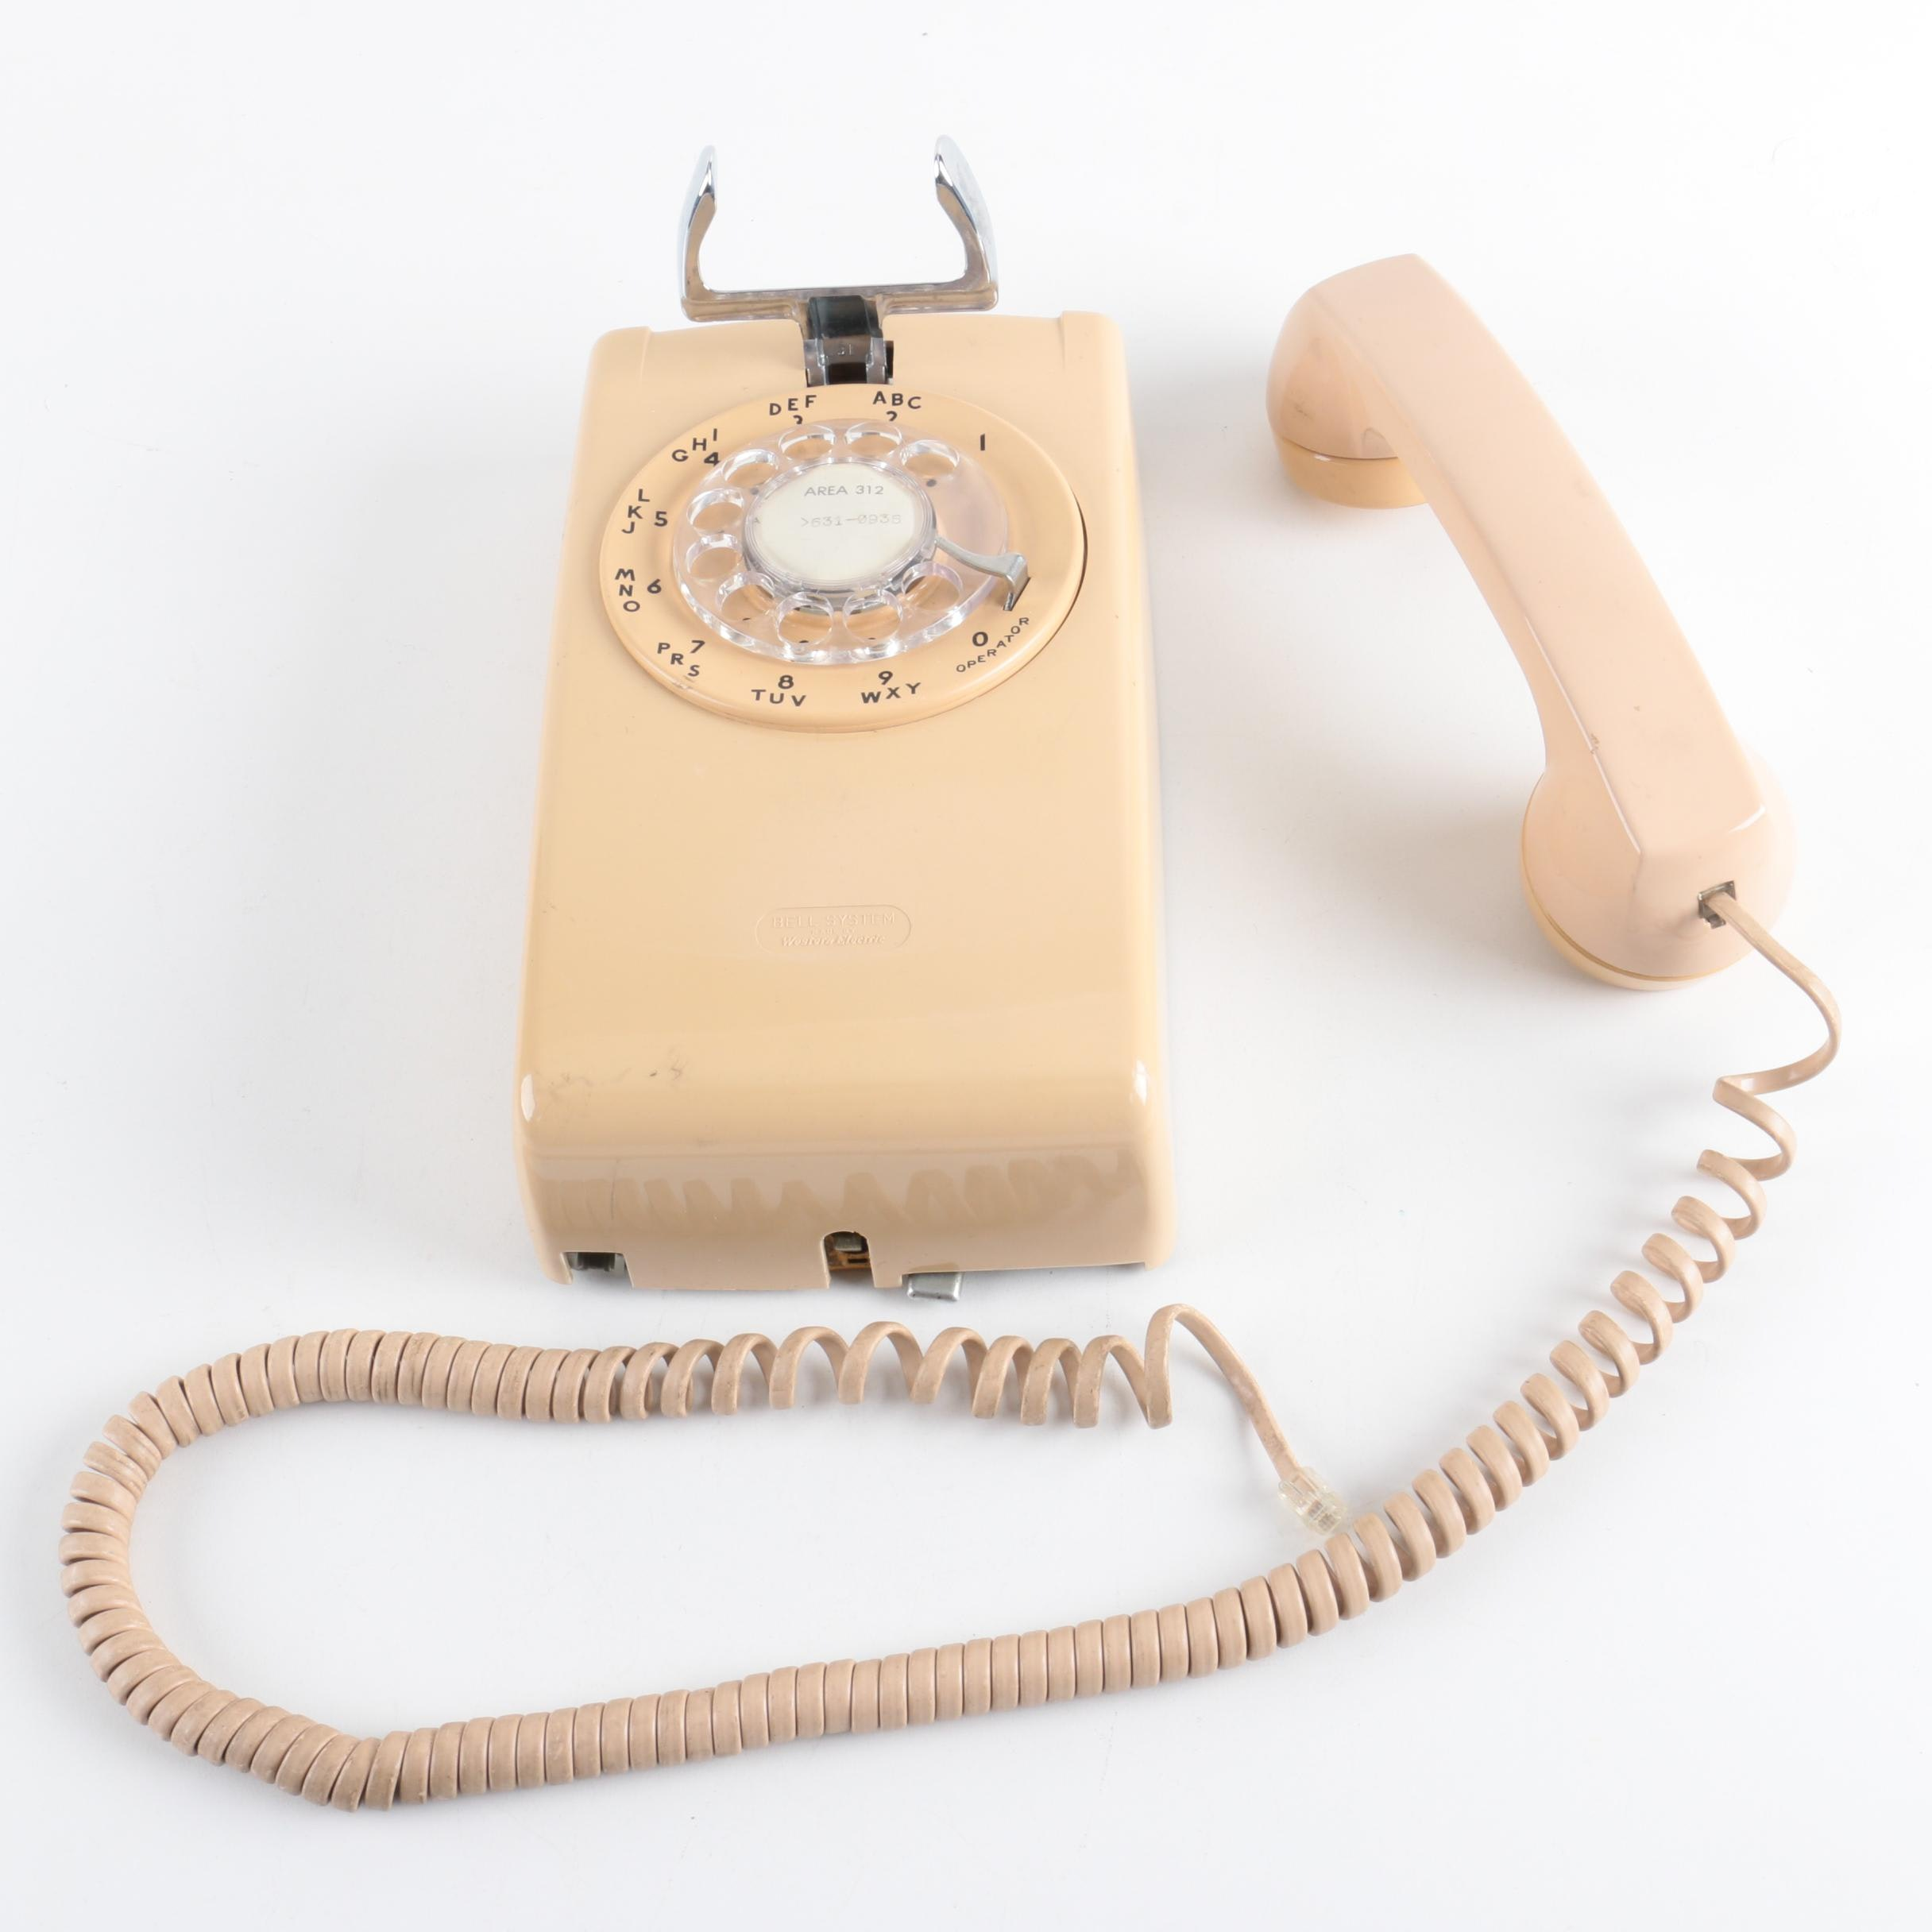 Vintage Bell System Telephone by Western Electric